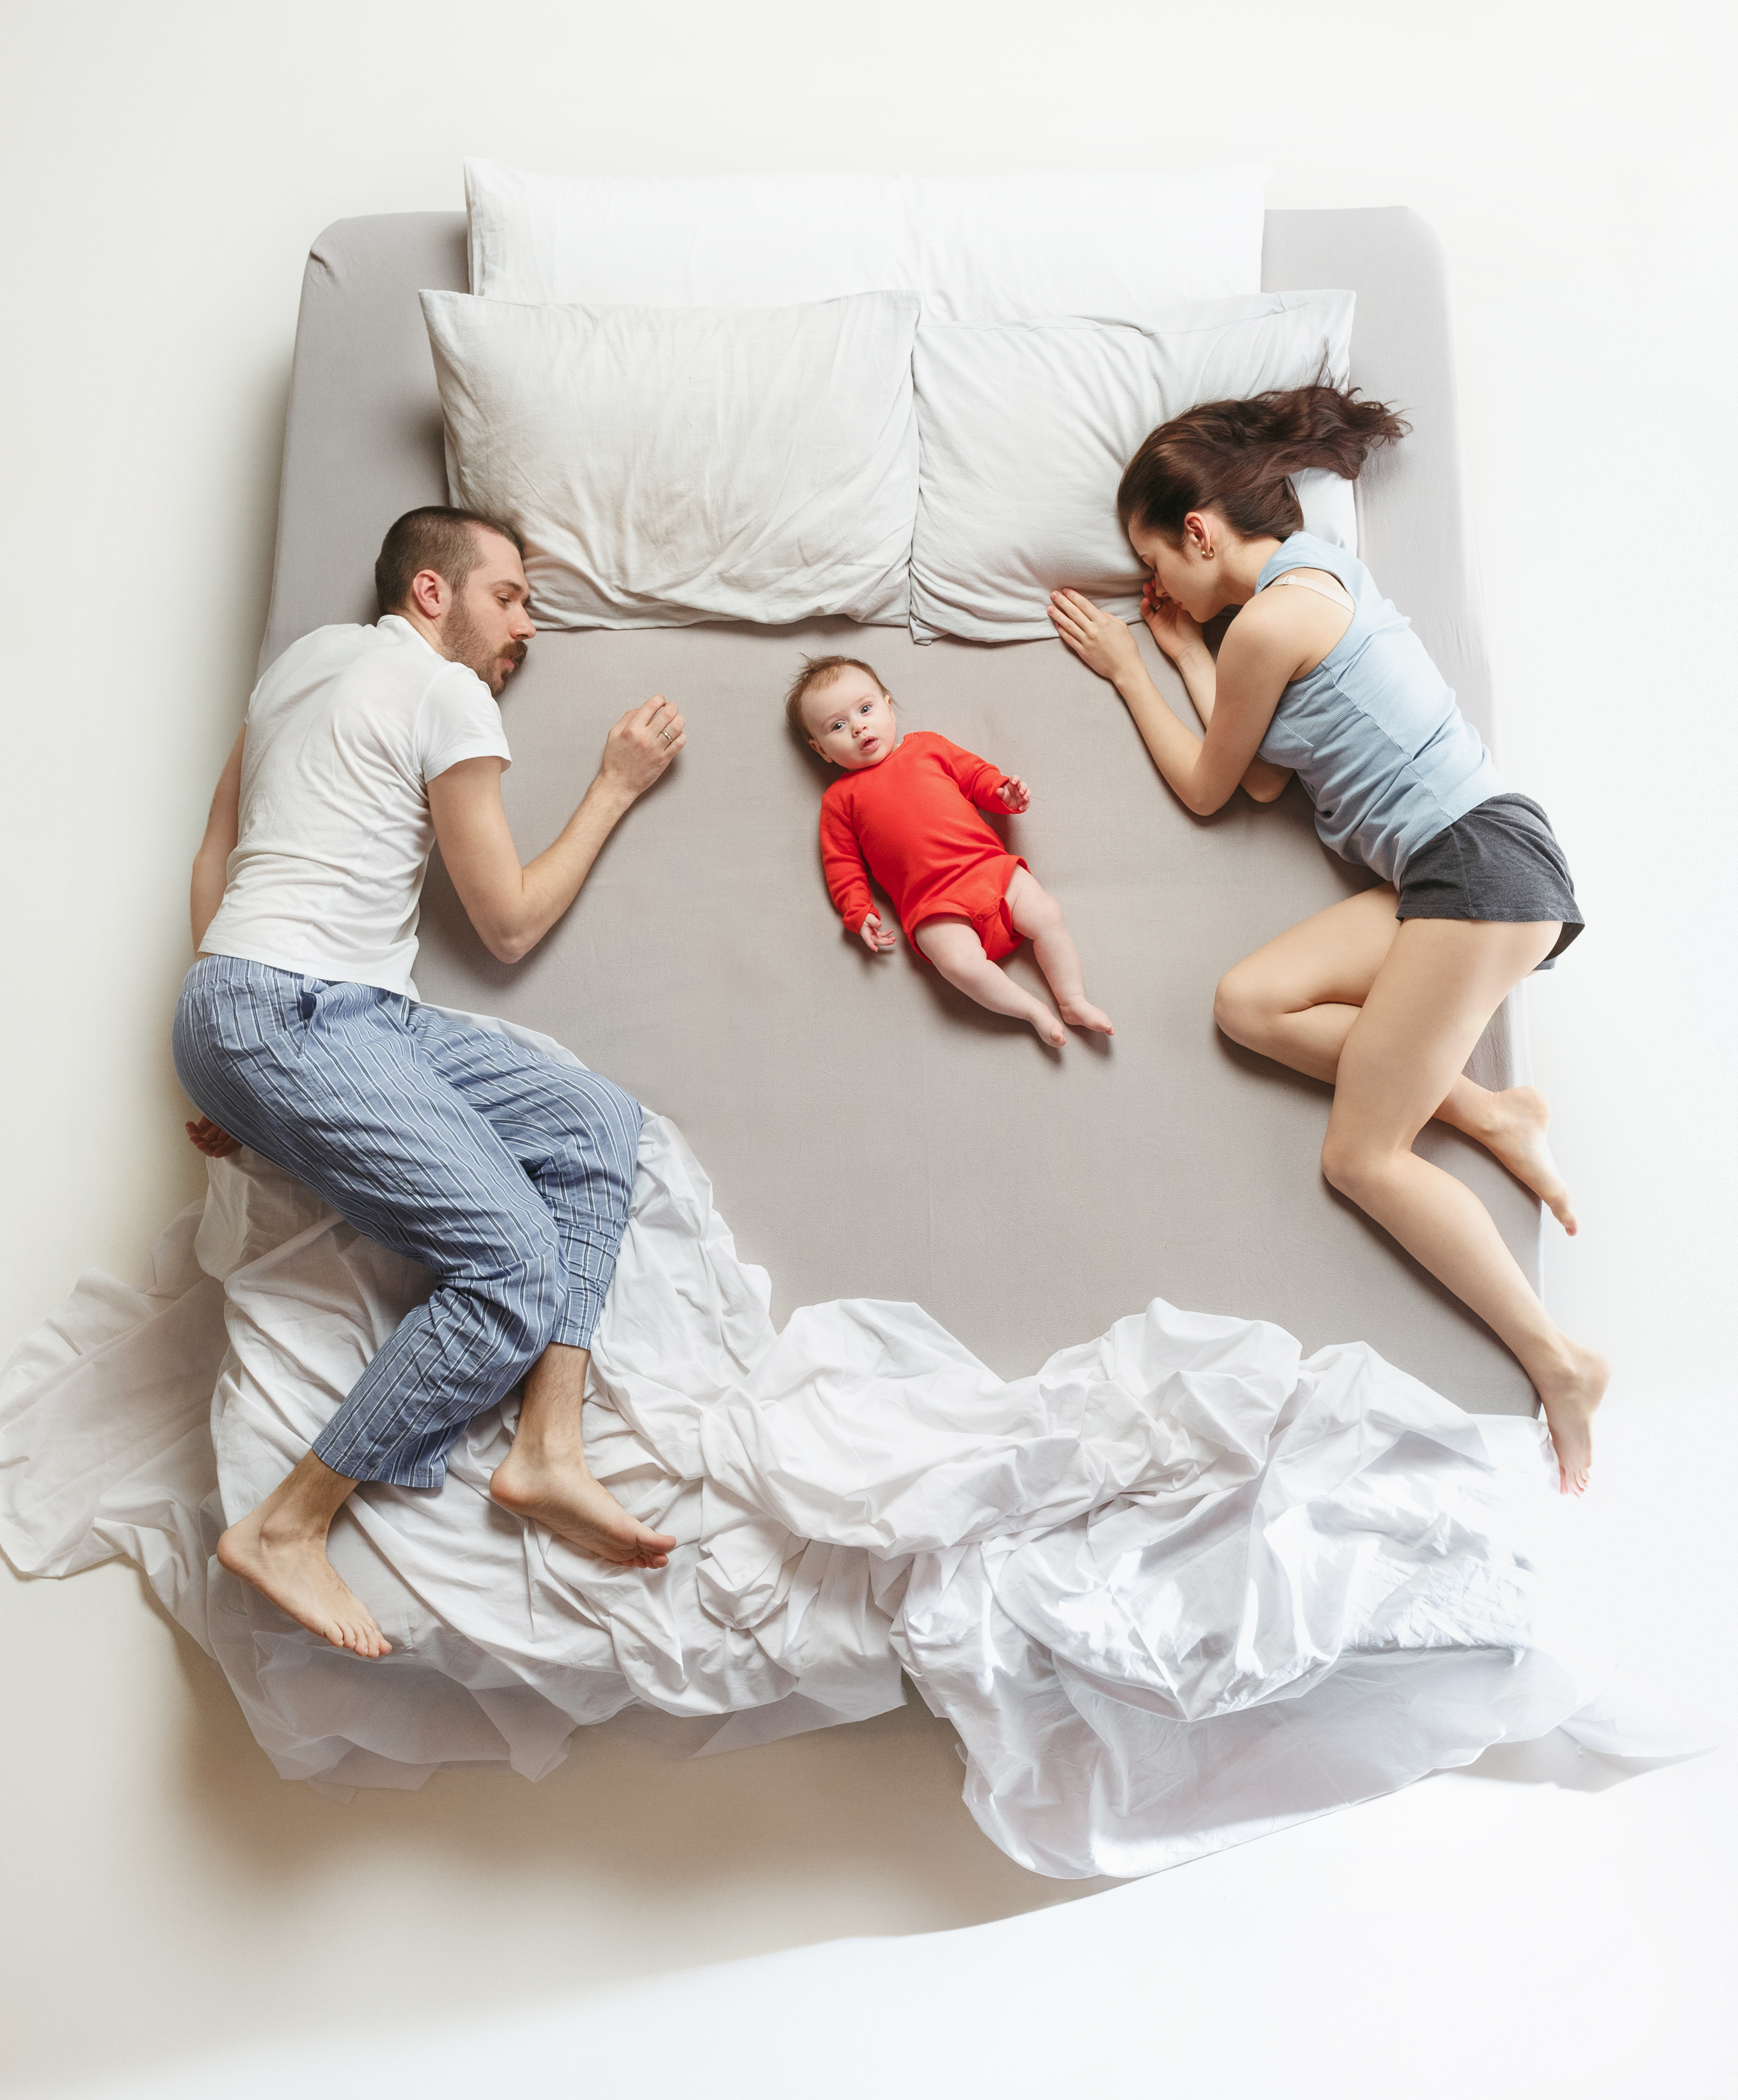 mom and dad in bed with baby